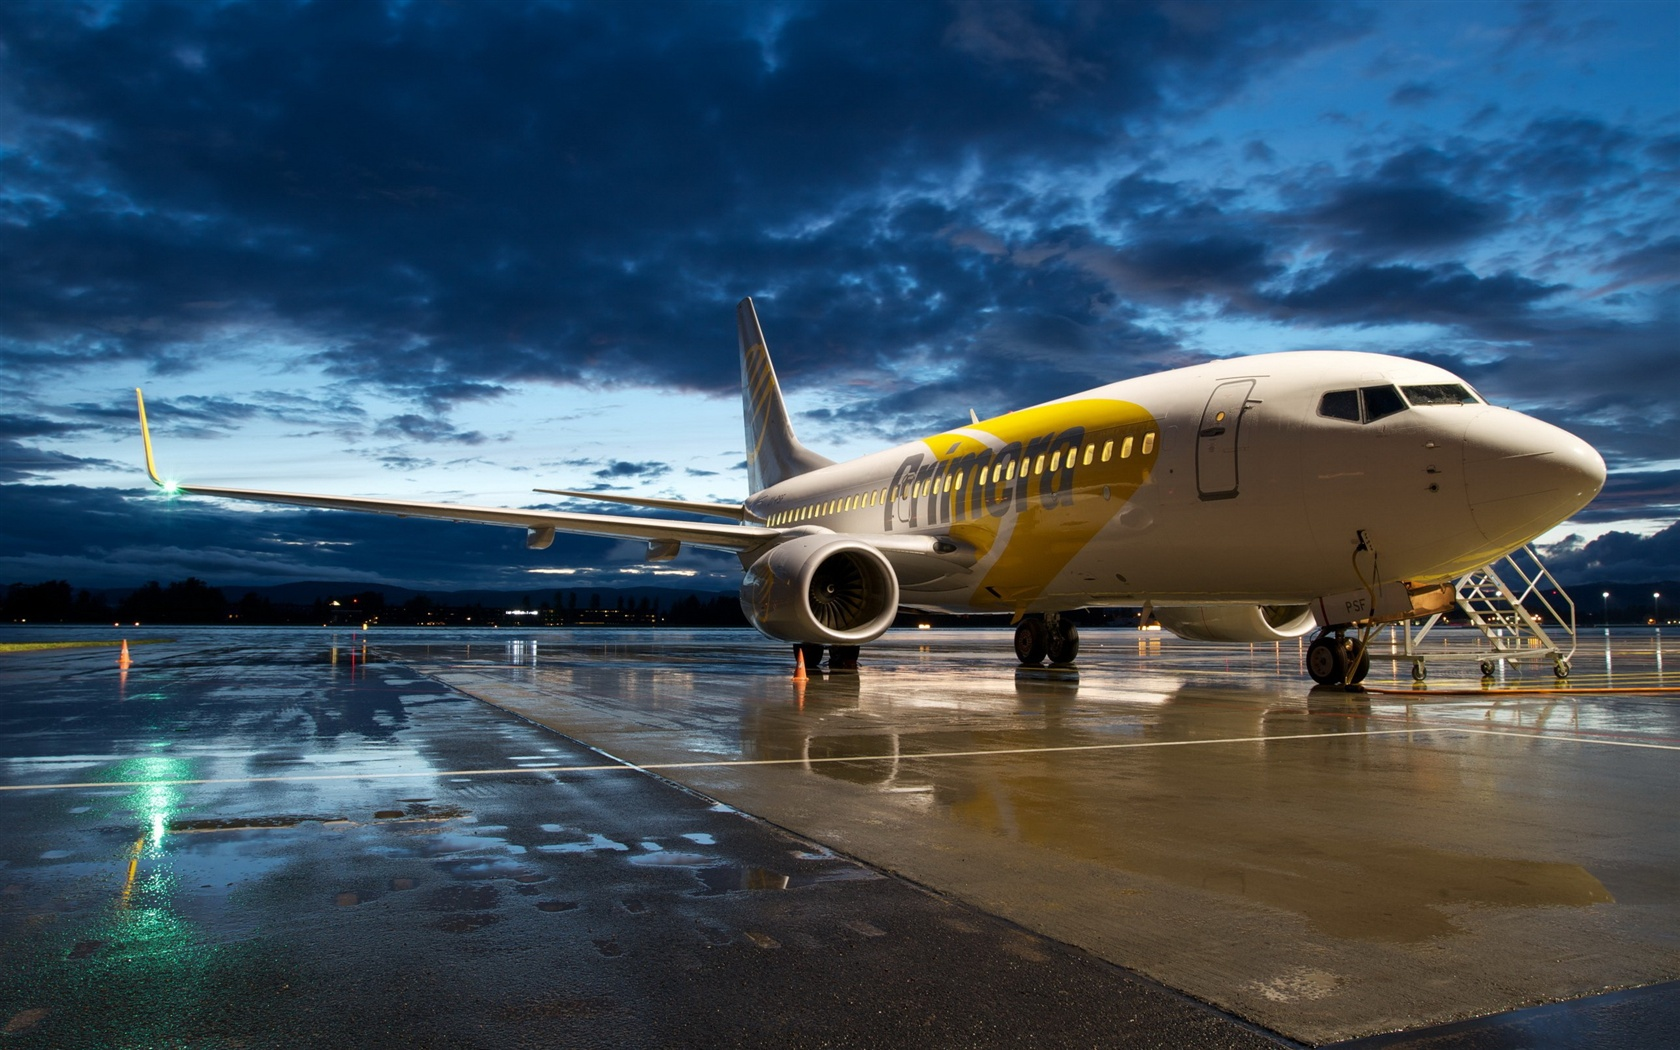 Wallpaper Aviation airport Boeing 737 aircraft 2560x1600 HD Picture, Image